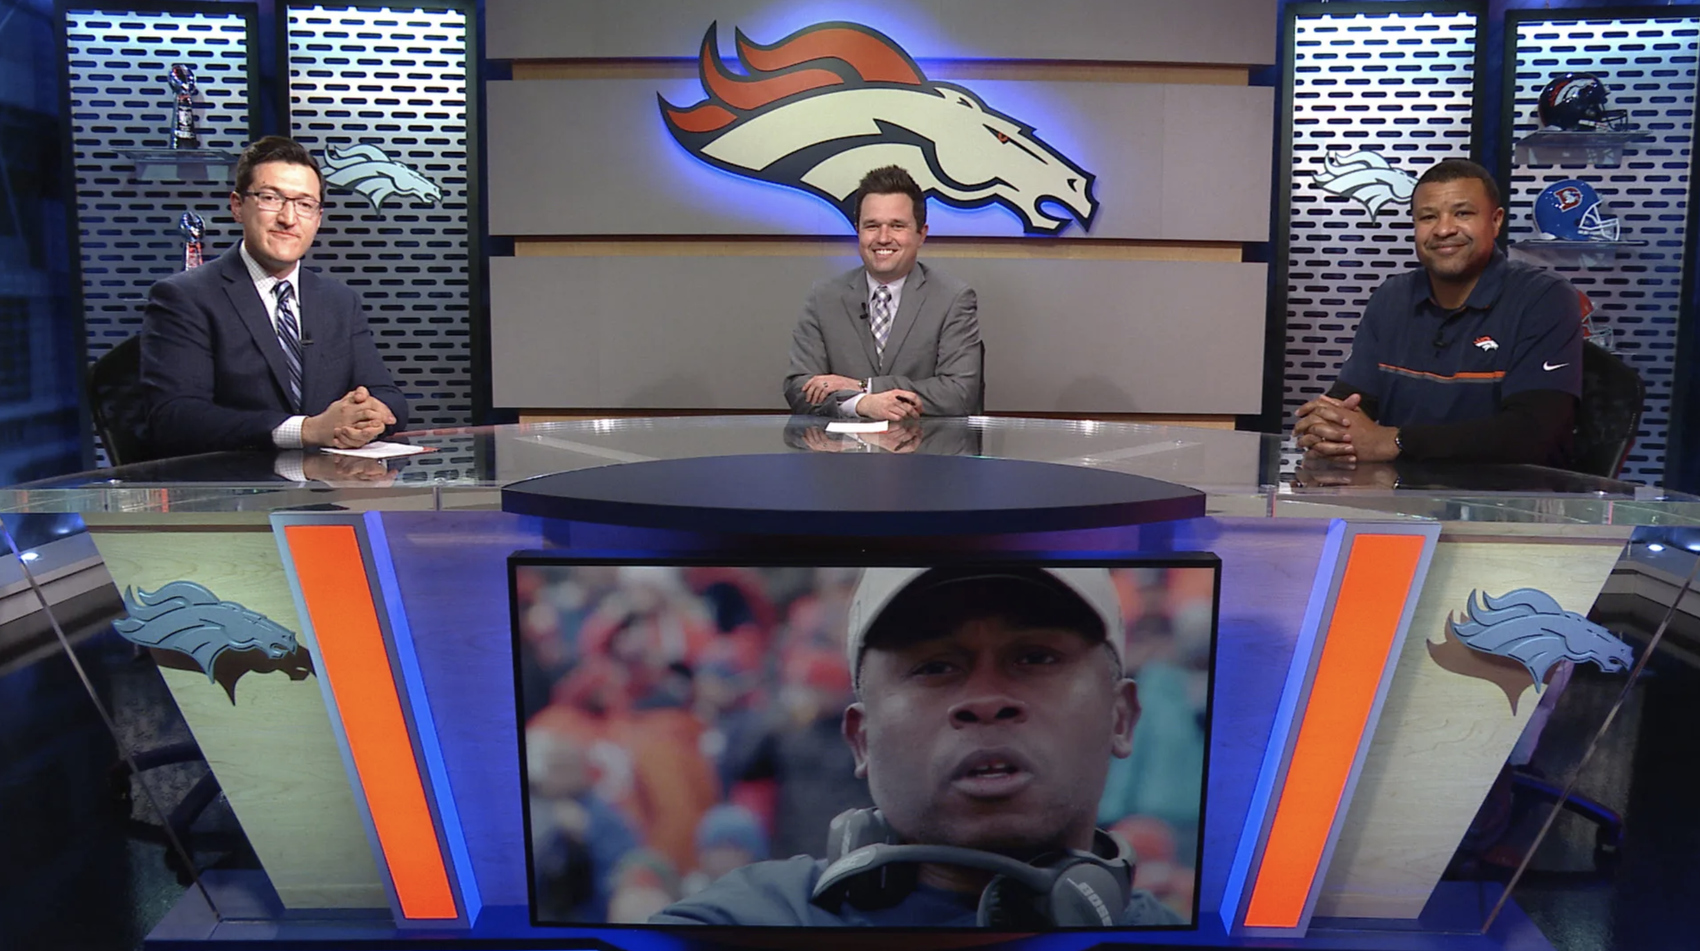 NCS_NFL-Denver-Broncos-TV-Studio_0003